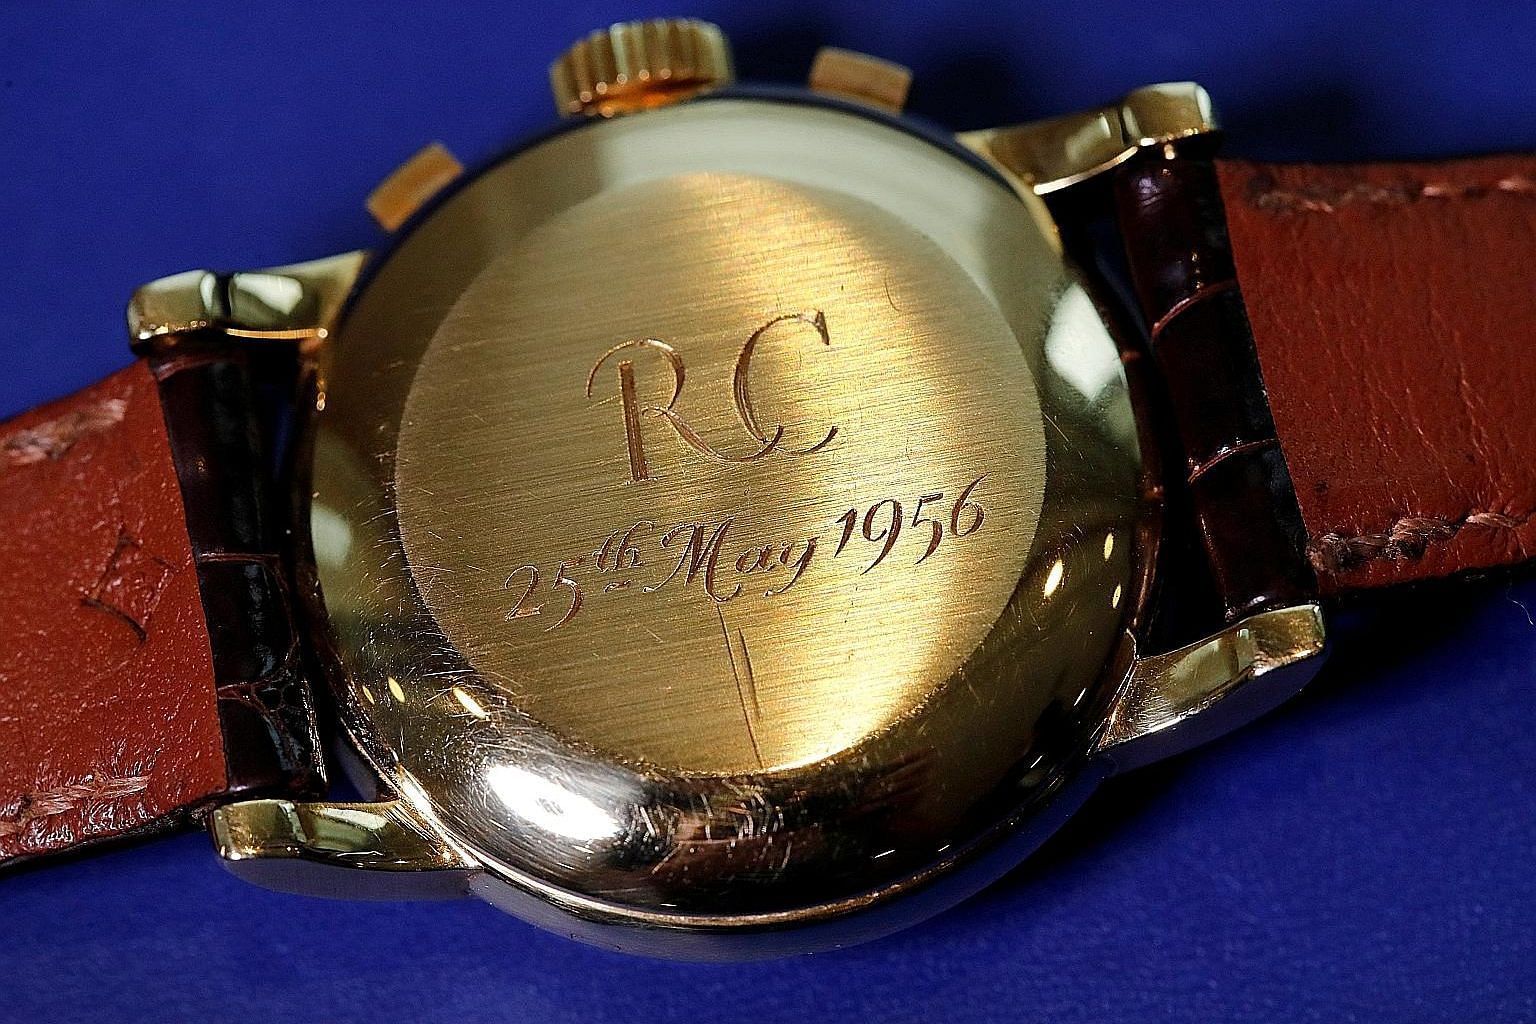 The watch (right) offers the day and date, a stopwatch and phases of the moon. The initials of the original owner, R.C., have been engraved on the back of the watch's yellow gold case (above).